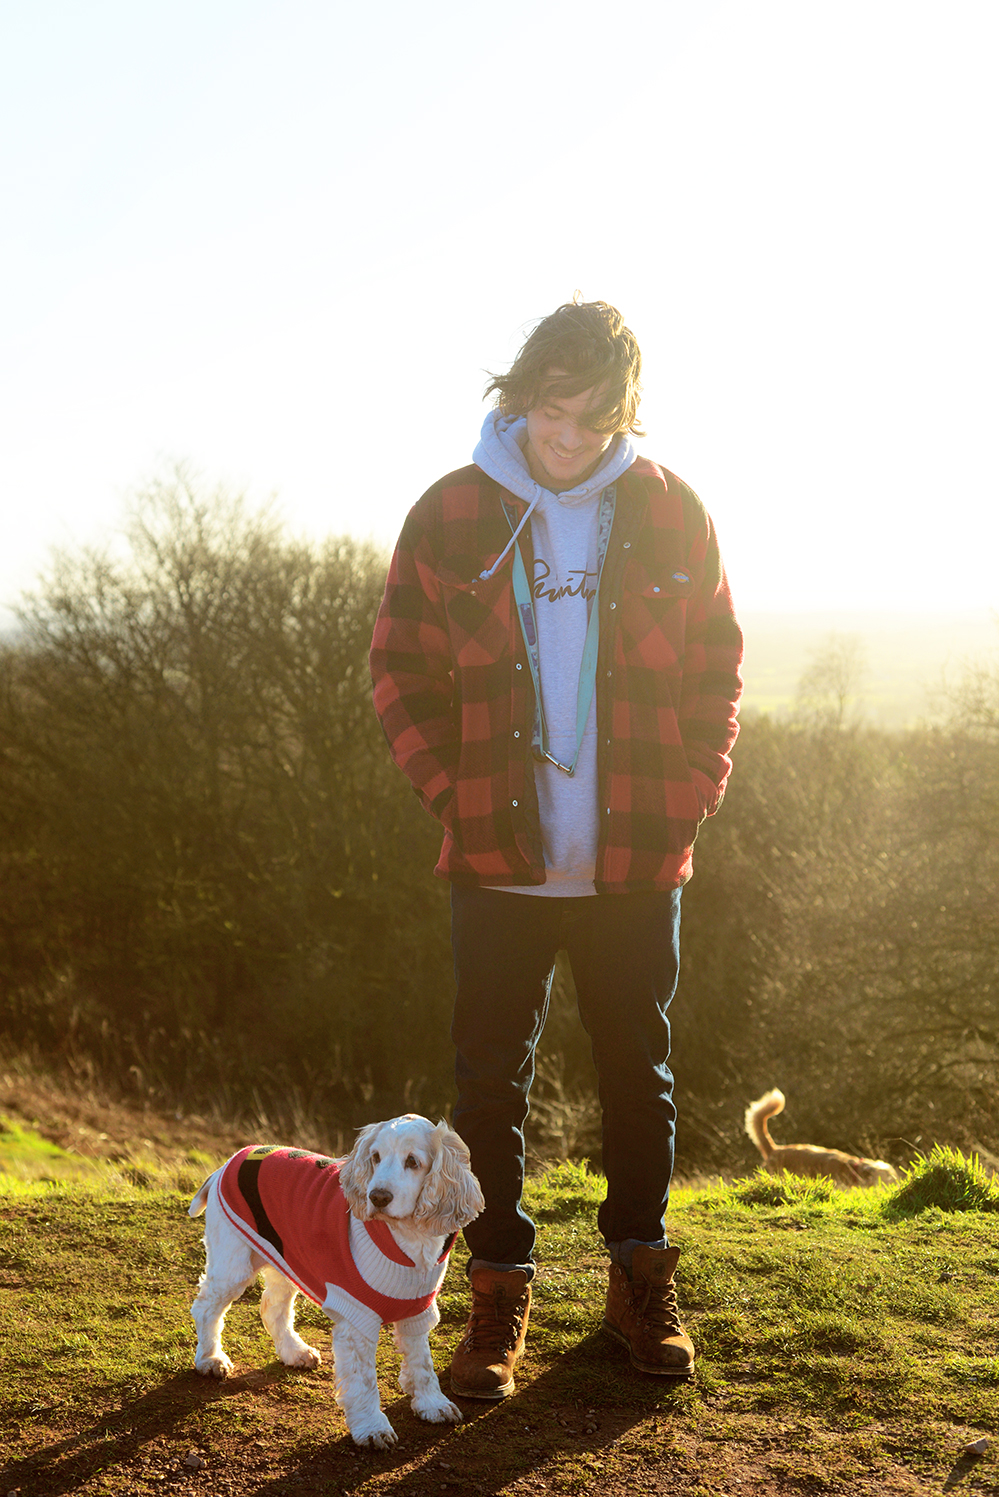 Hey ,I'm Jake and this is my little 11 year old cocker spaniel called Ella, she's a little slower and sassier in her old age but still loves bobbing around clent hills, especially in her red Christmas jumper!